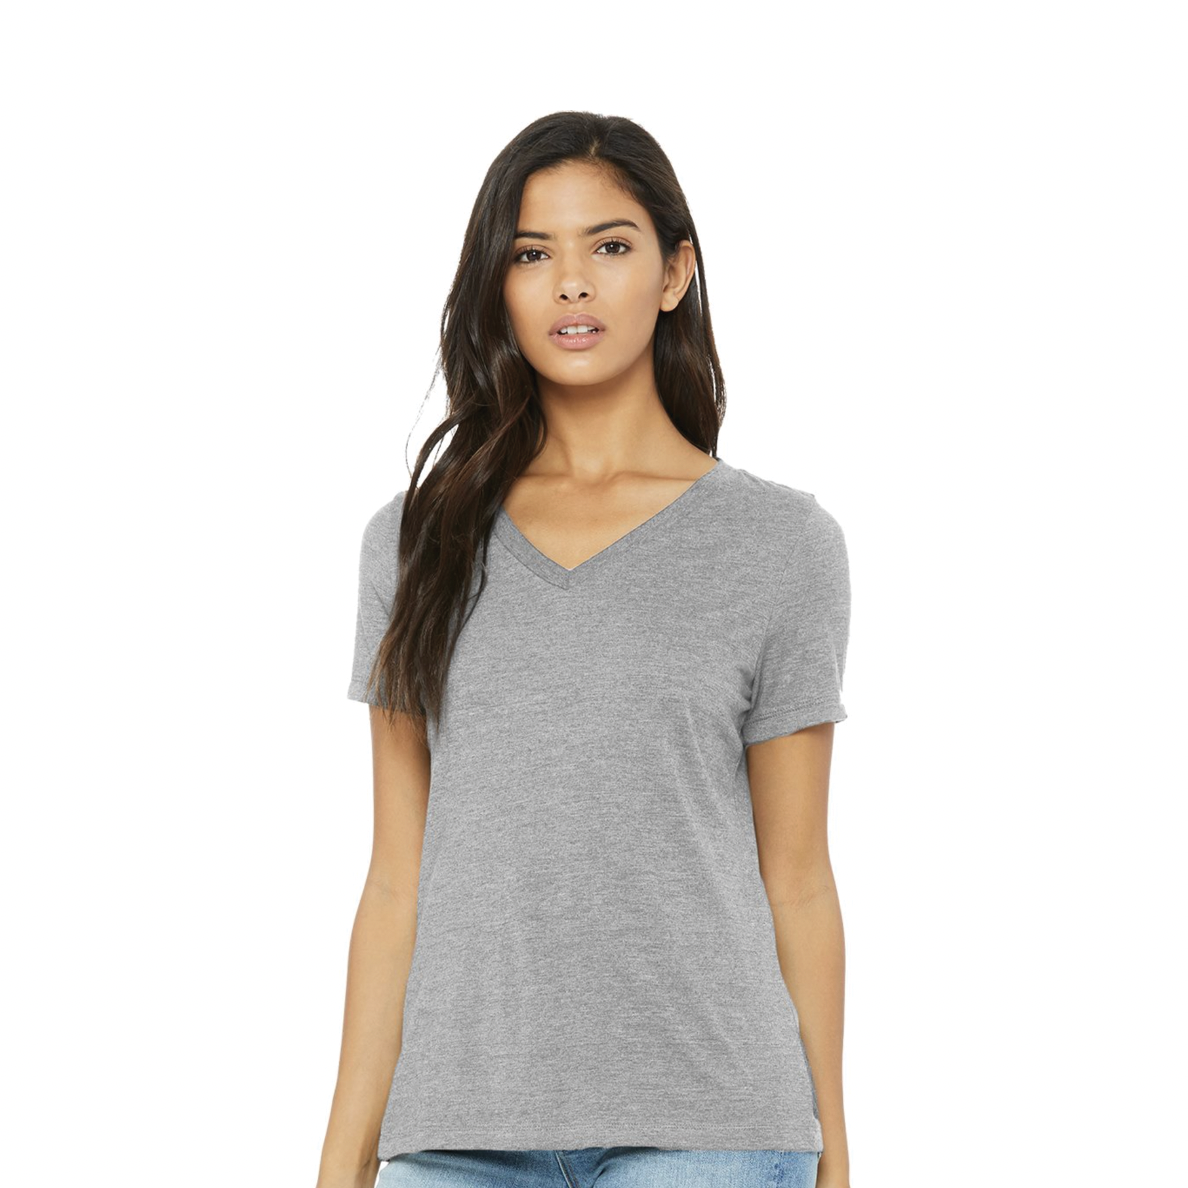 Premium BELLA + CANVAS - Women's Relaxed Jersey V-Neck Tee - 6405